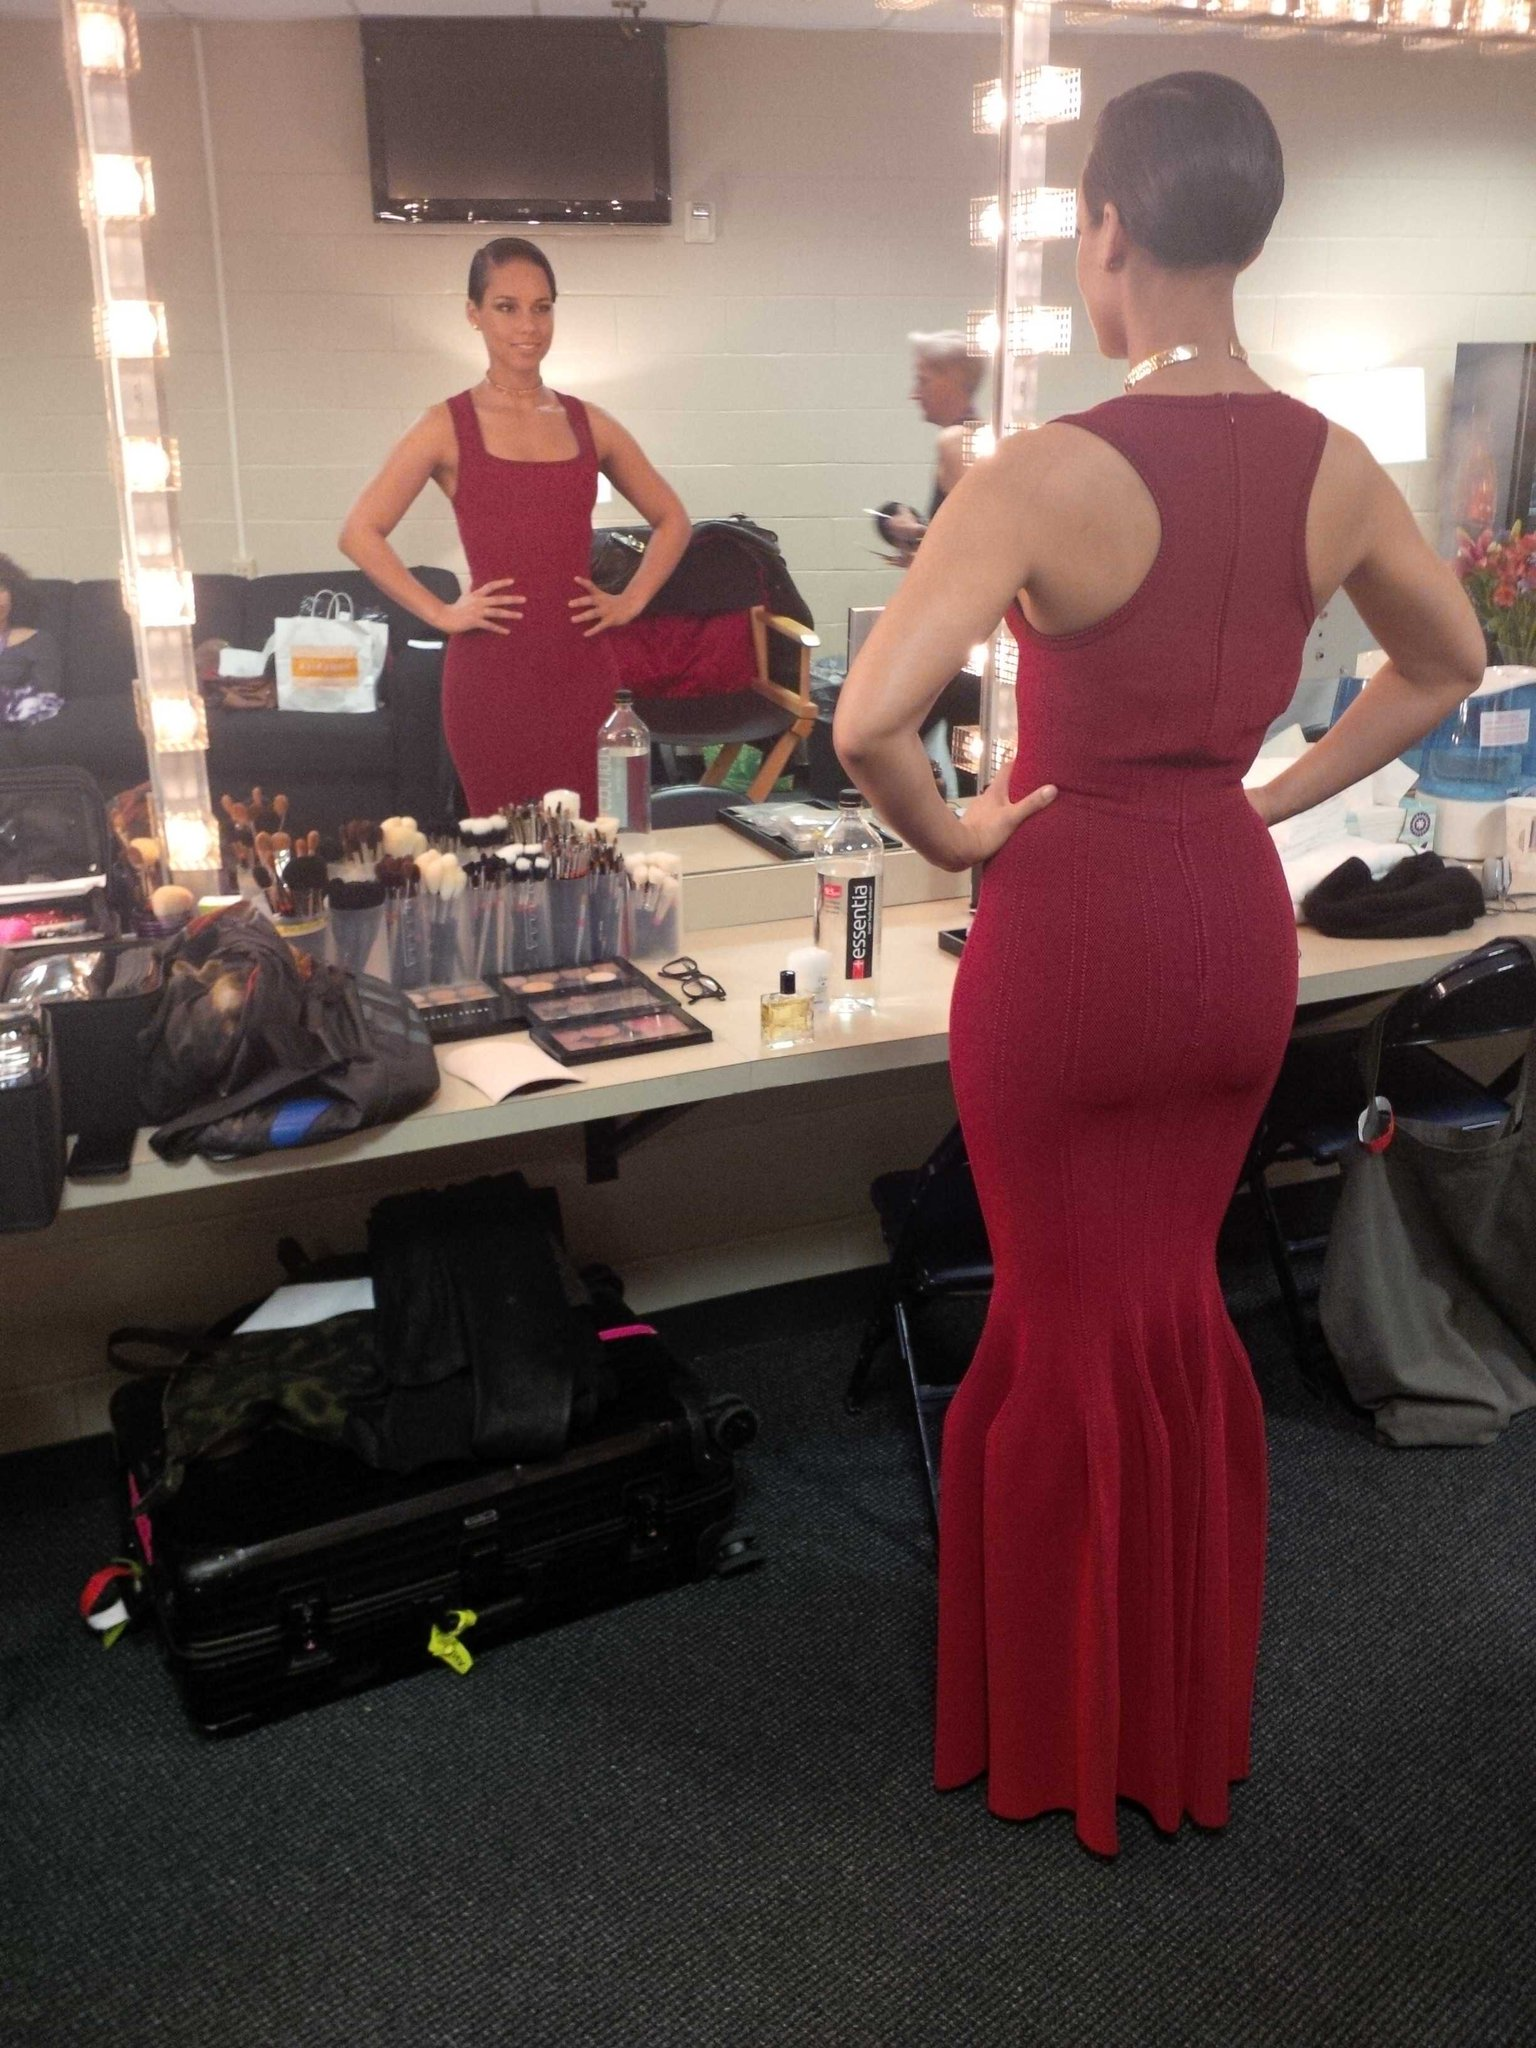 Alicia Keys On Twitter Almost Ready To Sing At The Superbowl Is This Football Appropriate Heels Are My Version Of Cleets Sb47 Http T Co Kqoignkw